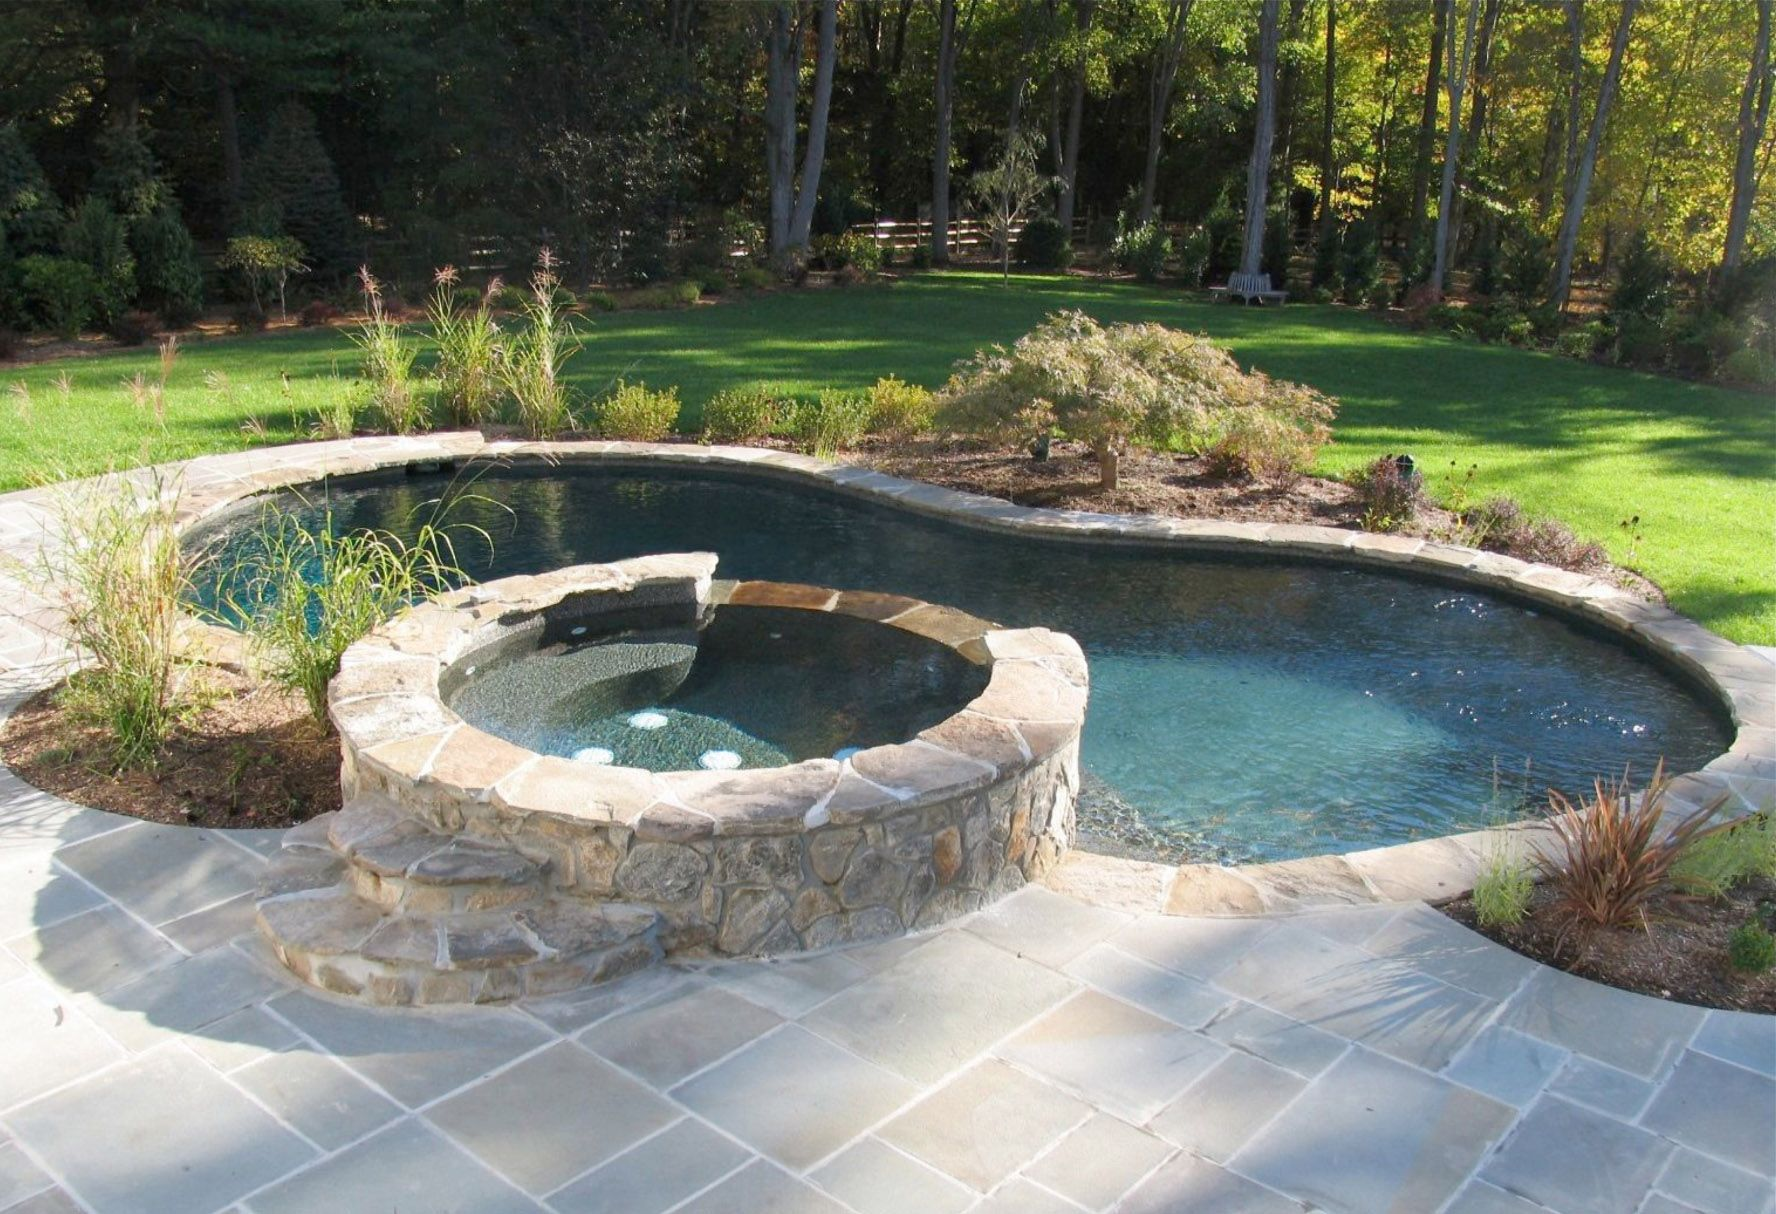 Can T Decide Between A Pool And A Hot Tub Well You Don T Have To You Can Get A Pool And Hot Tub Co Hot Tub Backyard Bluestone Patio Backyard Pool Landscaping